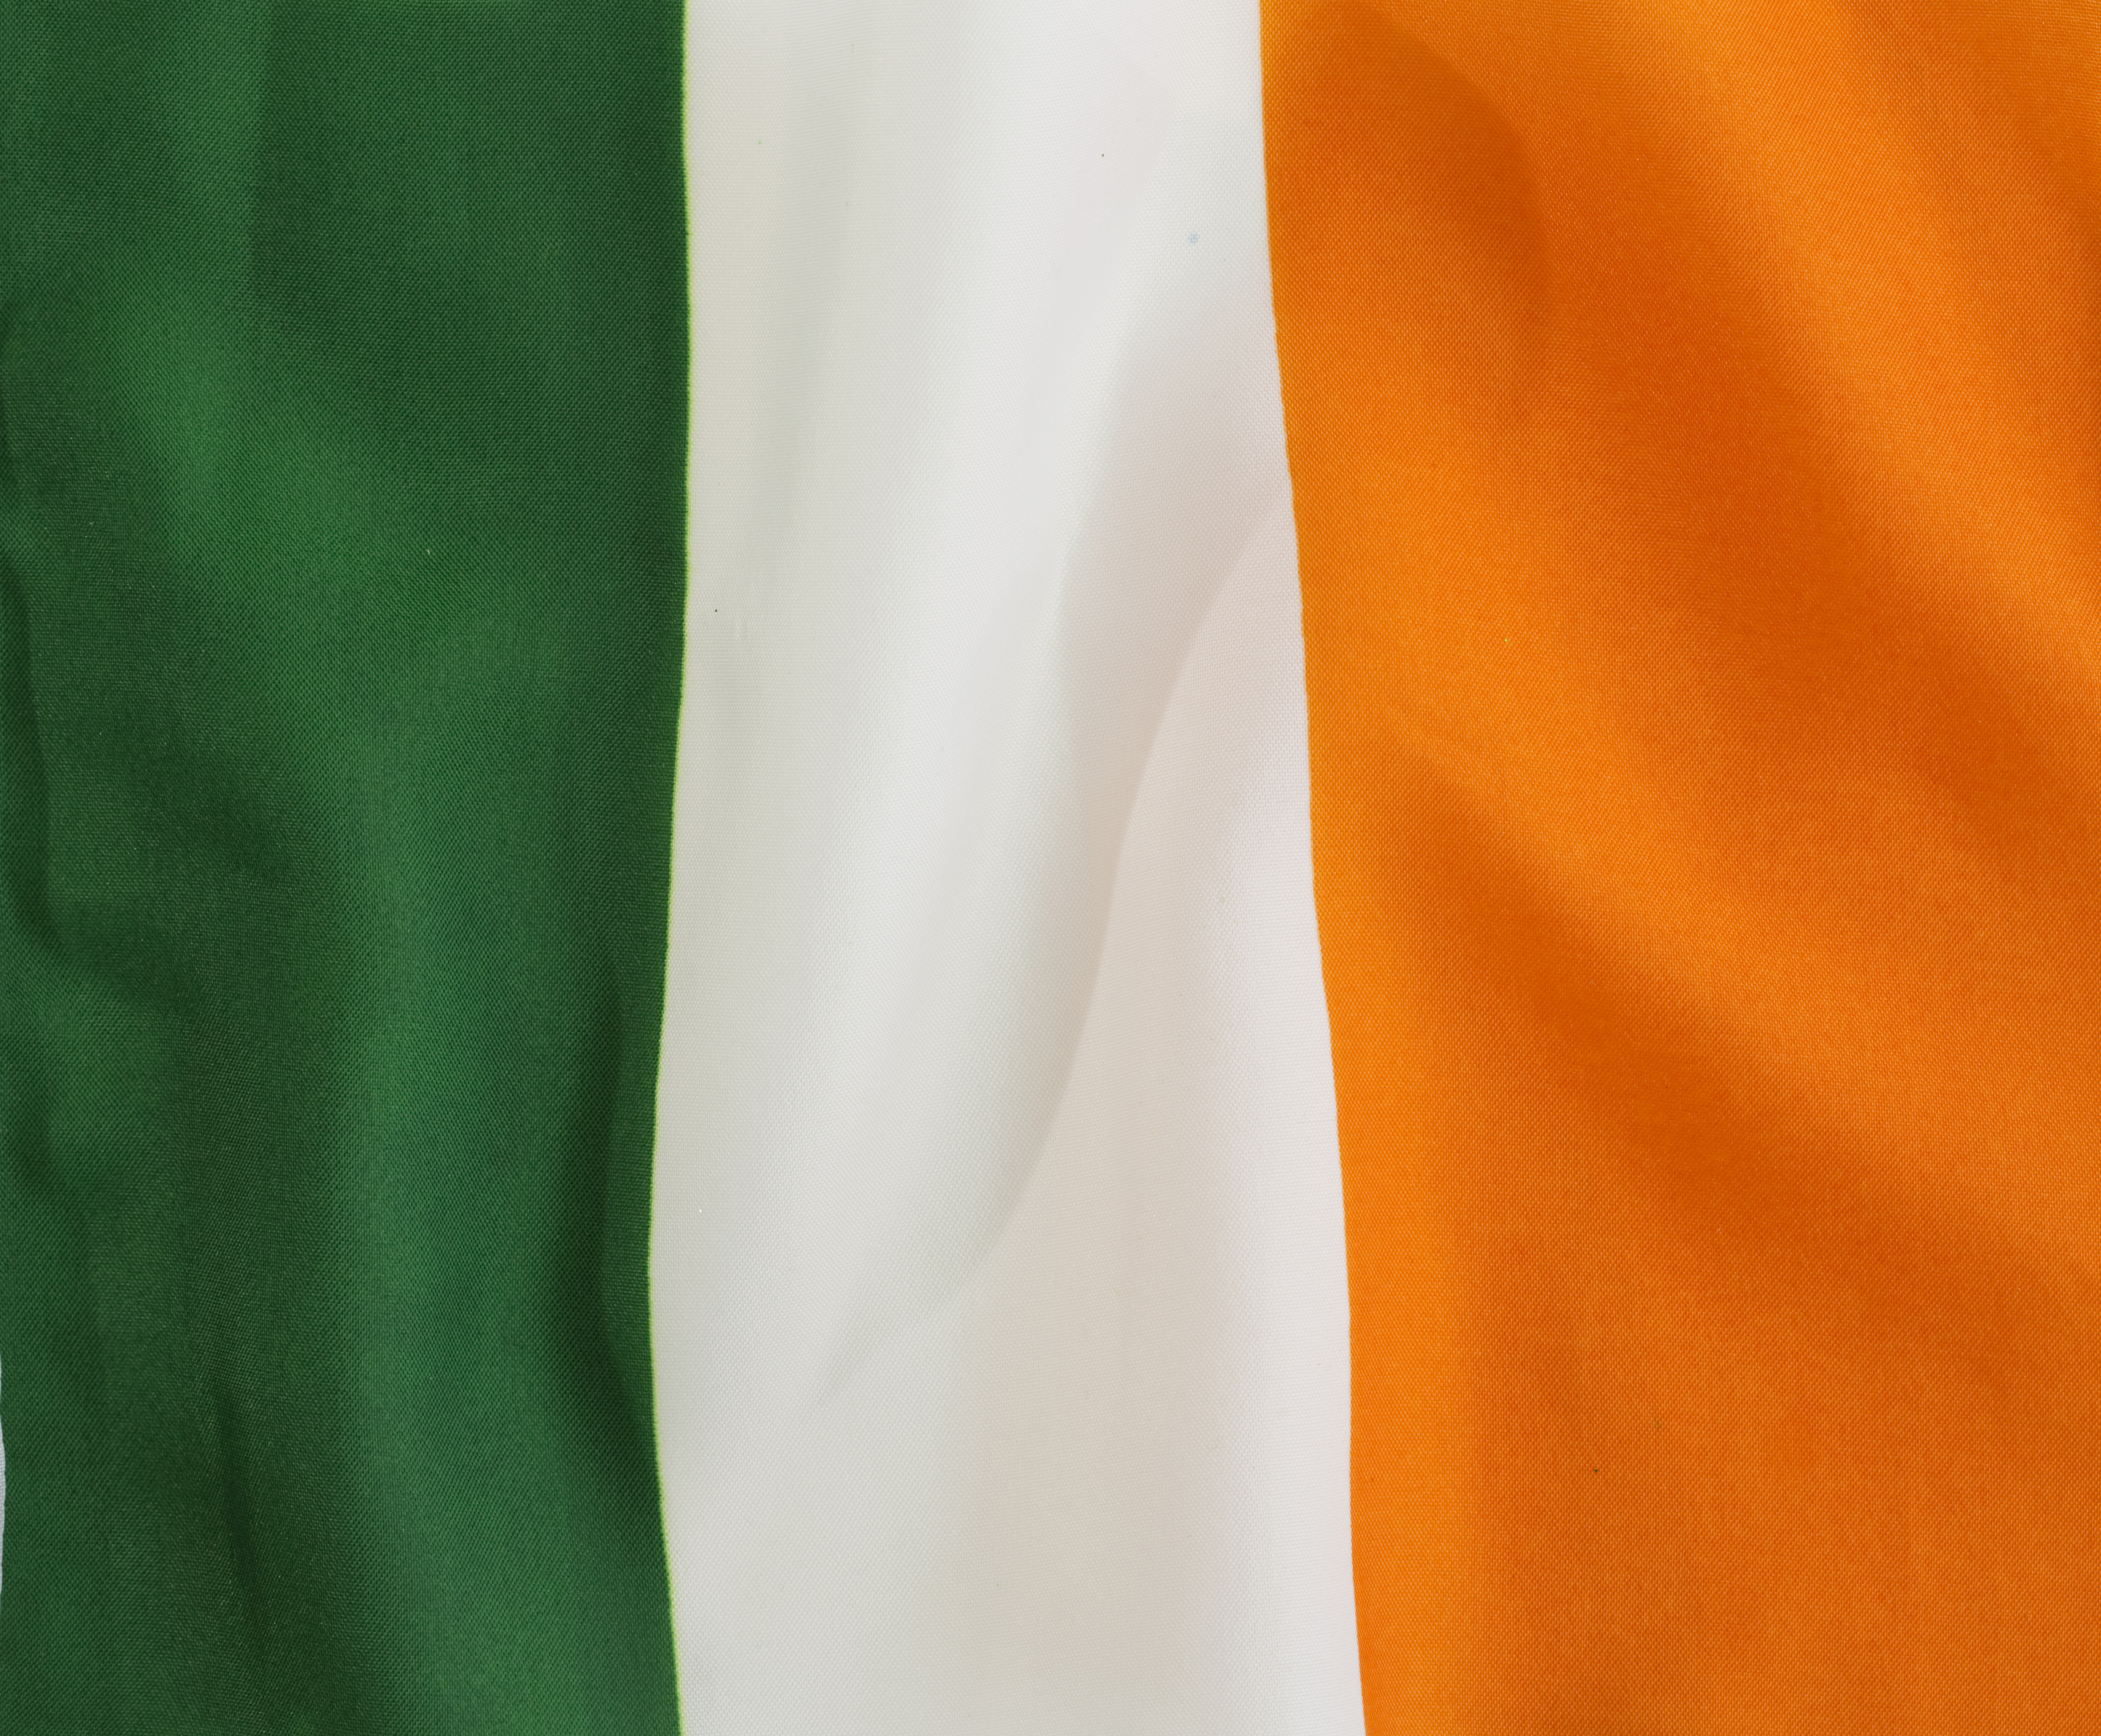 The Irish Flag - Many establishments display the familiar Irish tricolor flag on St. Patrick's Day, and paradegoers may even wave miniature versions of this significant symbol in support of those marching. This instantly recognizable flag has a rich history. Equal parts green, white and orange, the flag was designed to foster peace in the country that had experienced considerable turmoil due to the divide between the country's Protestant and Catholic residents.